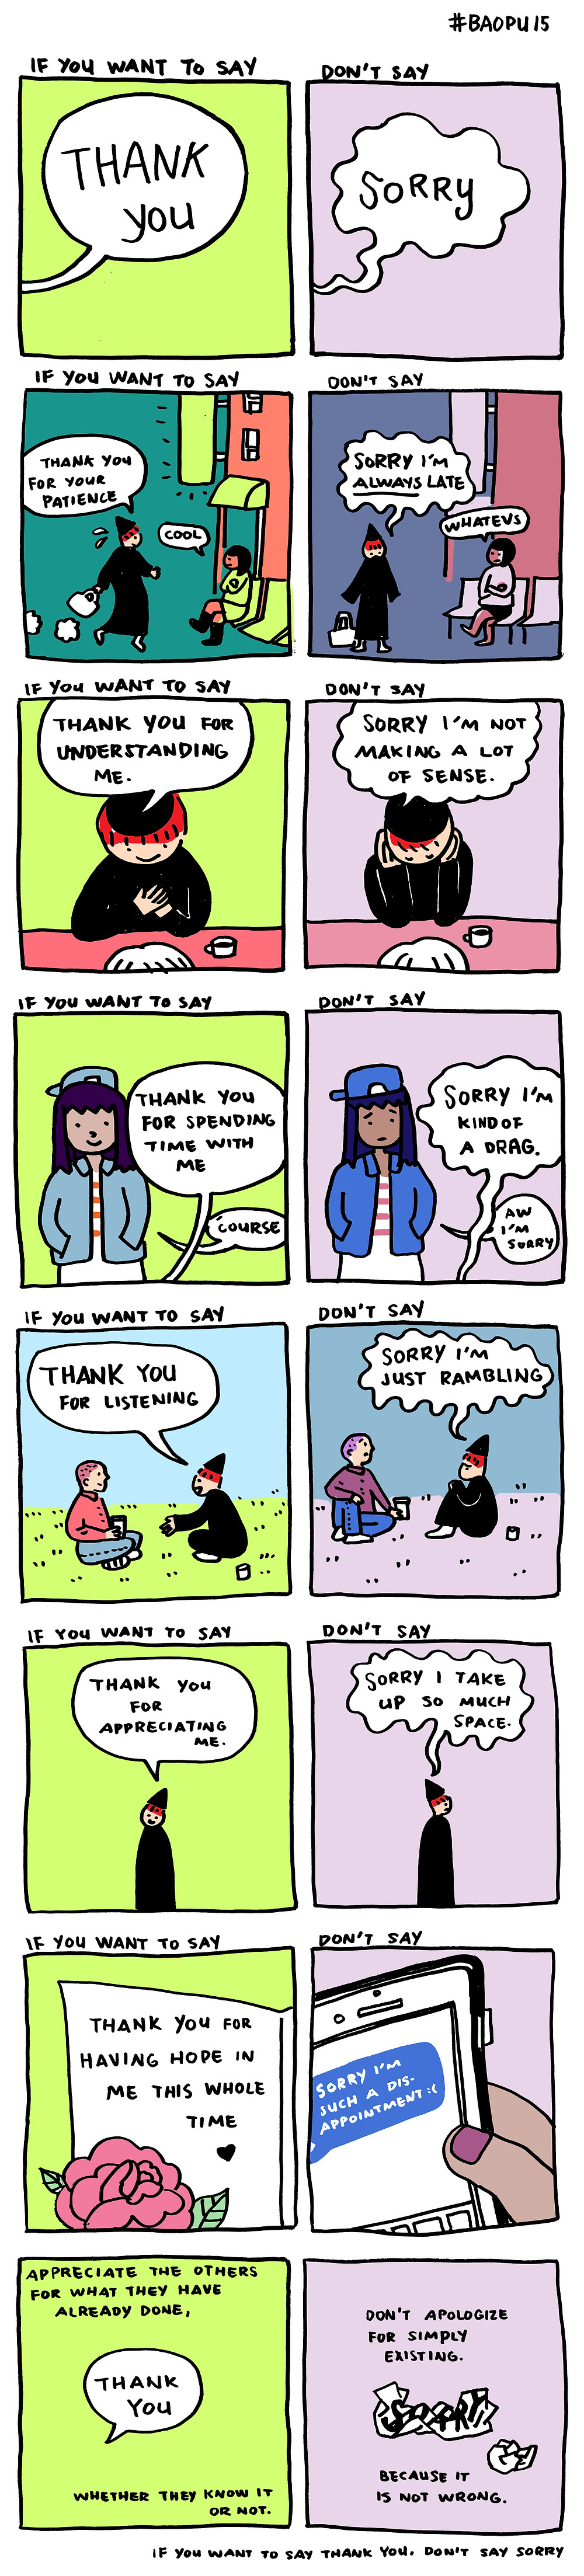 Yao Xiao's comic - if you want to say thank you, don't say sorry.